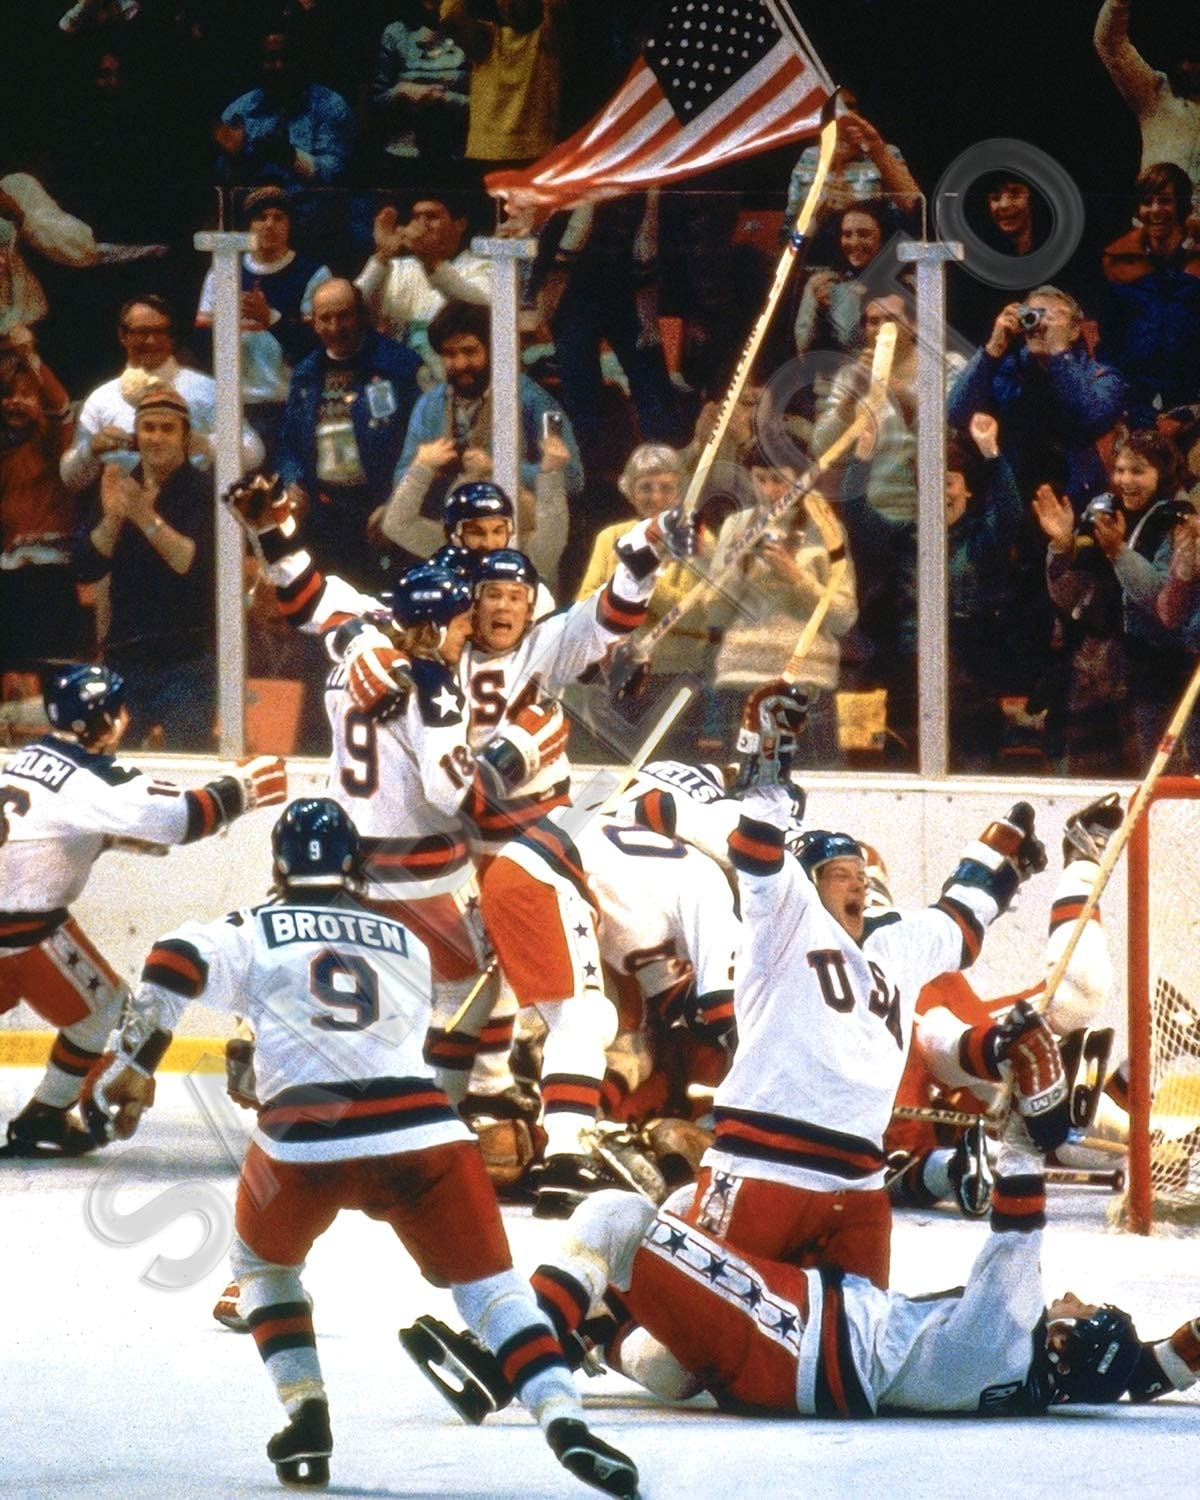 1980 USA Olympic Gold Medal Hockey Team Miracle On Ice Unsigned 8x10 Photo